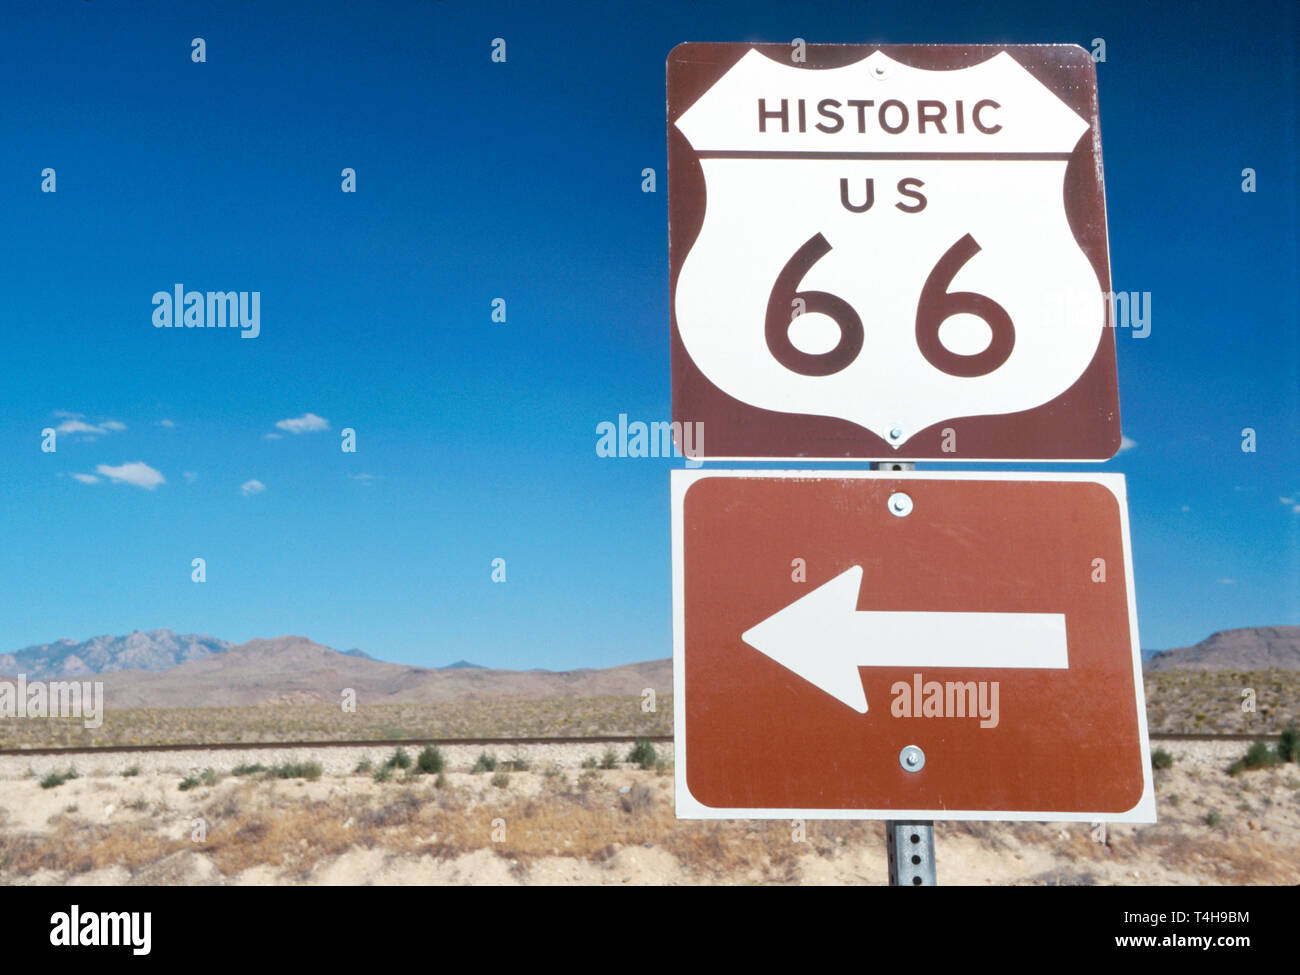 c622d2ecb8533 Highway Route 66 Stock Photos   Highway Route 66 Stock Images - Alamy